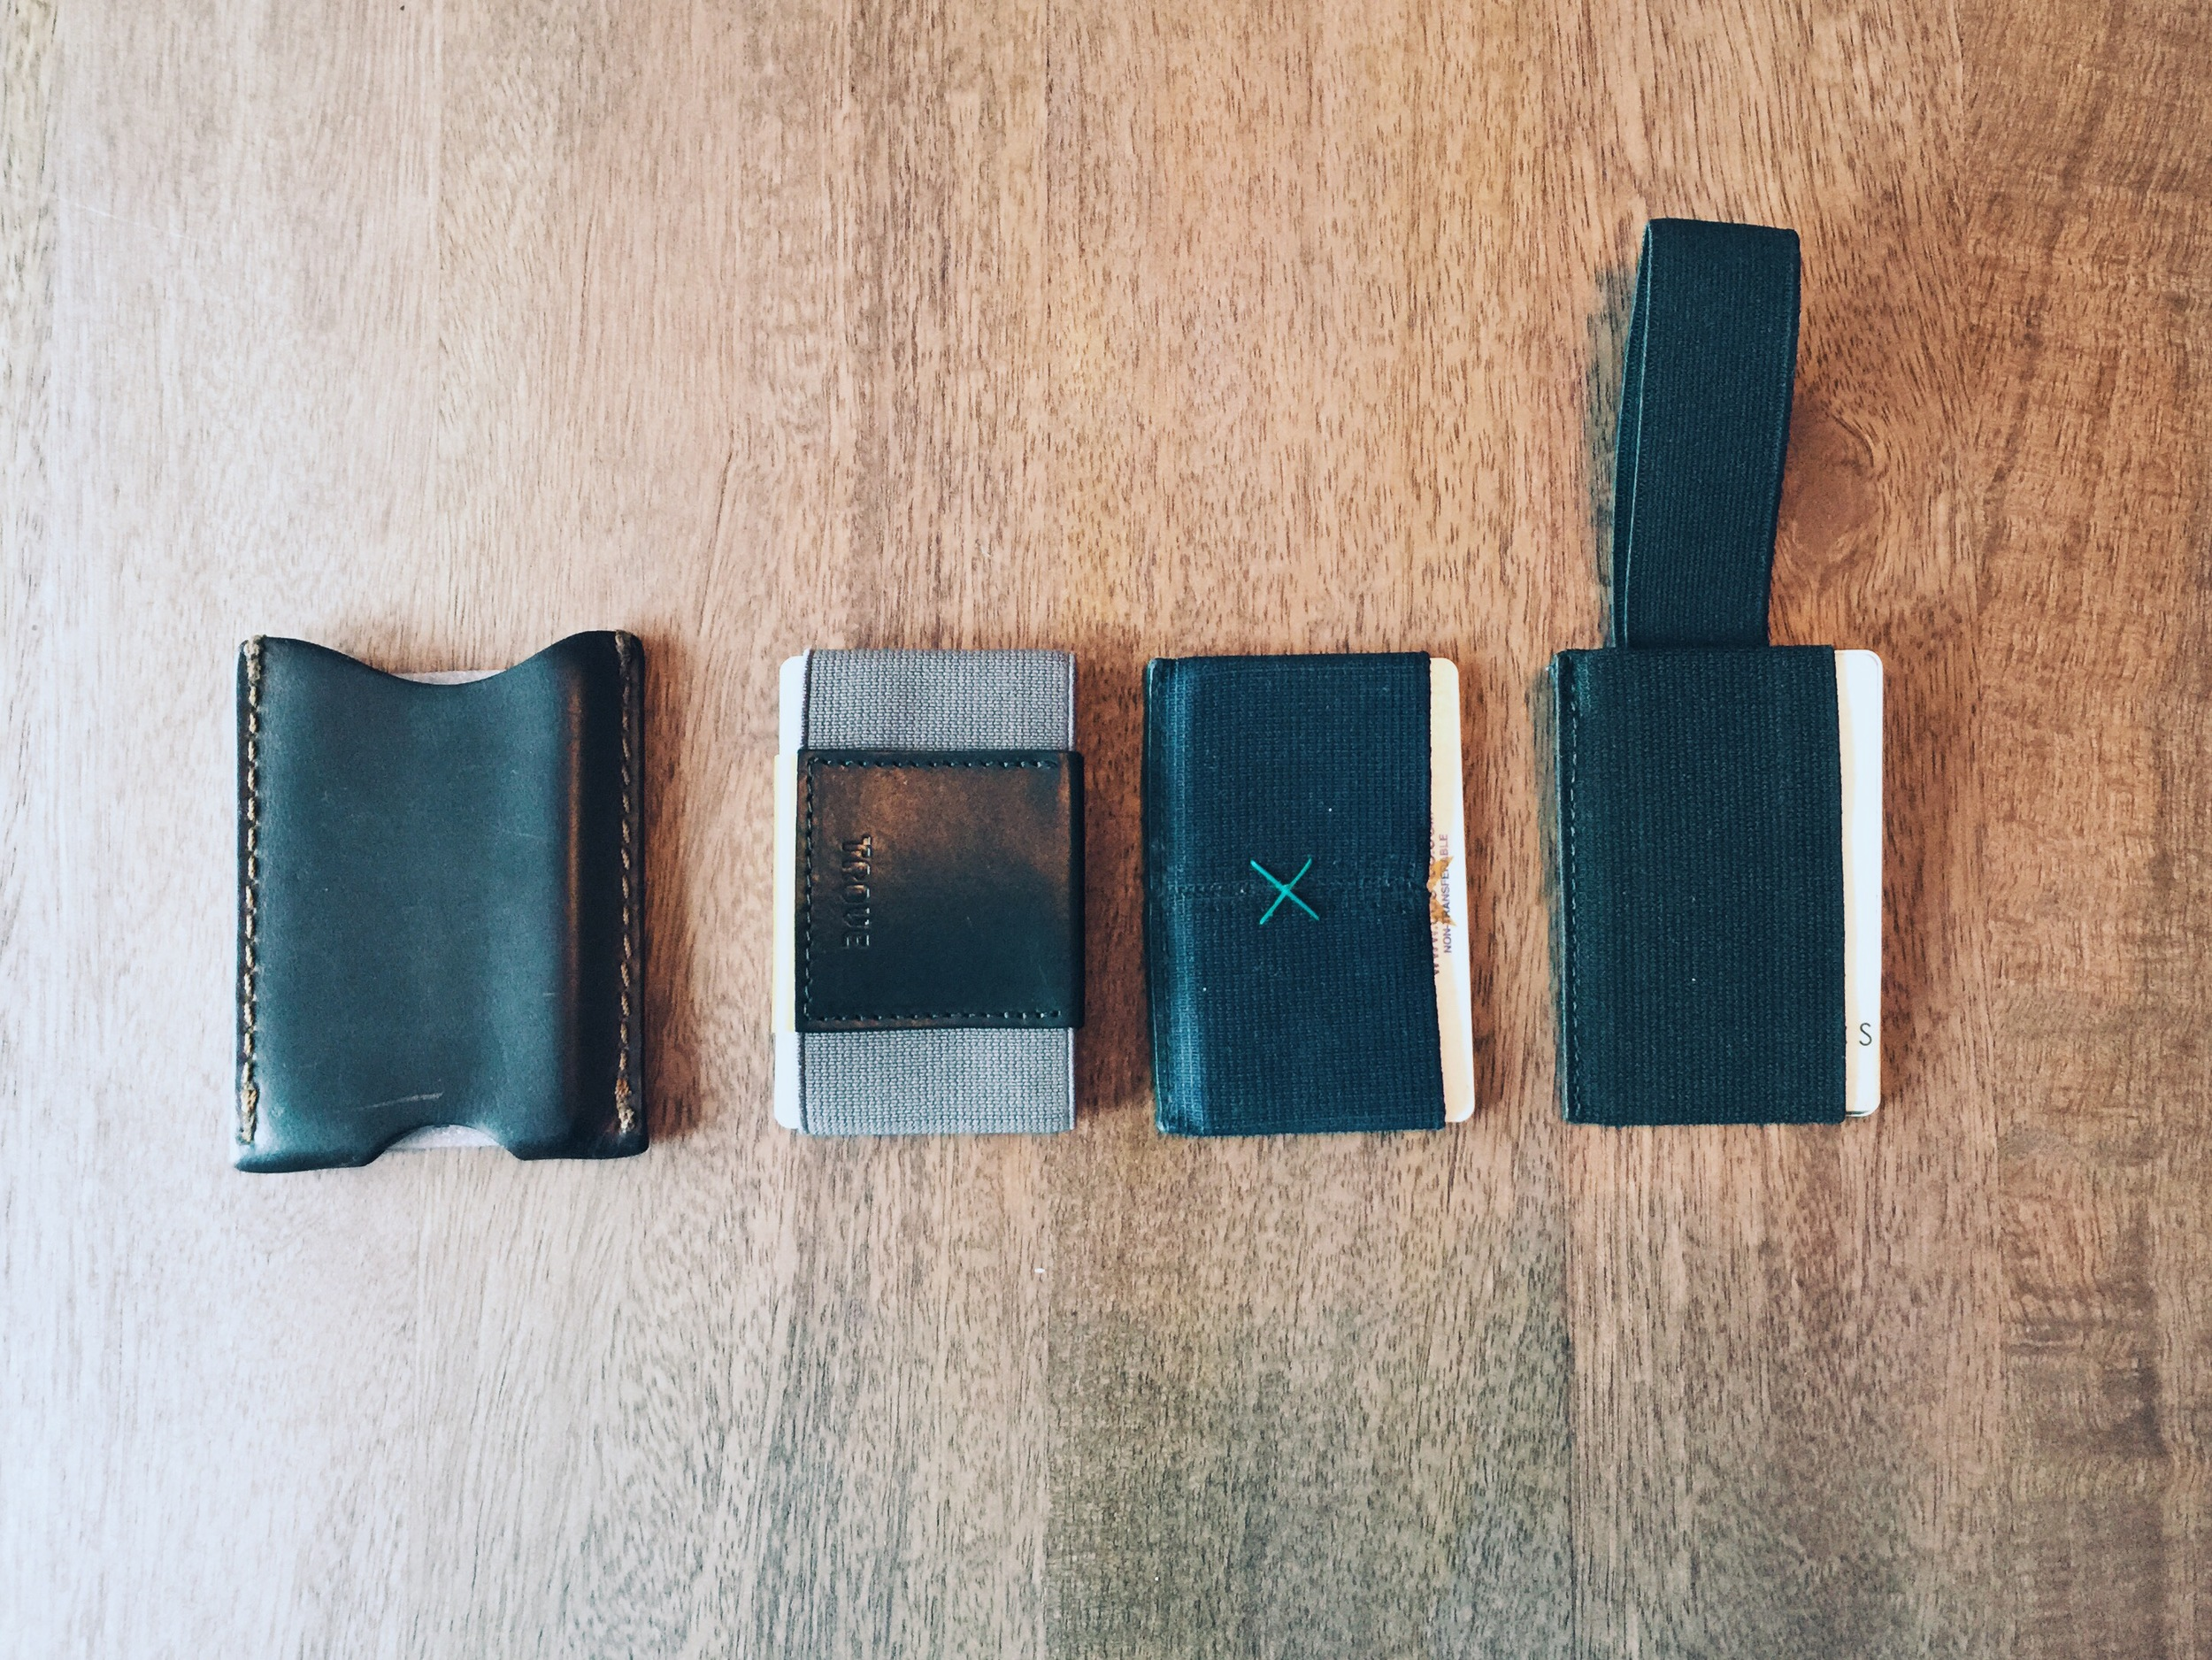 The Trove and its competitors (from left to right): Saddleback Sleeve Wallet, Trove Factory Edition, Supr Slim Wallet, and Snapback Wallet 2.